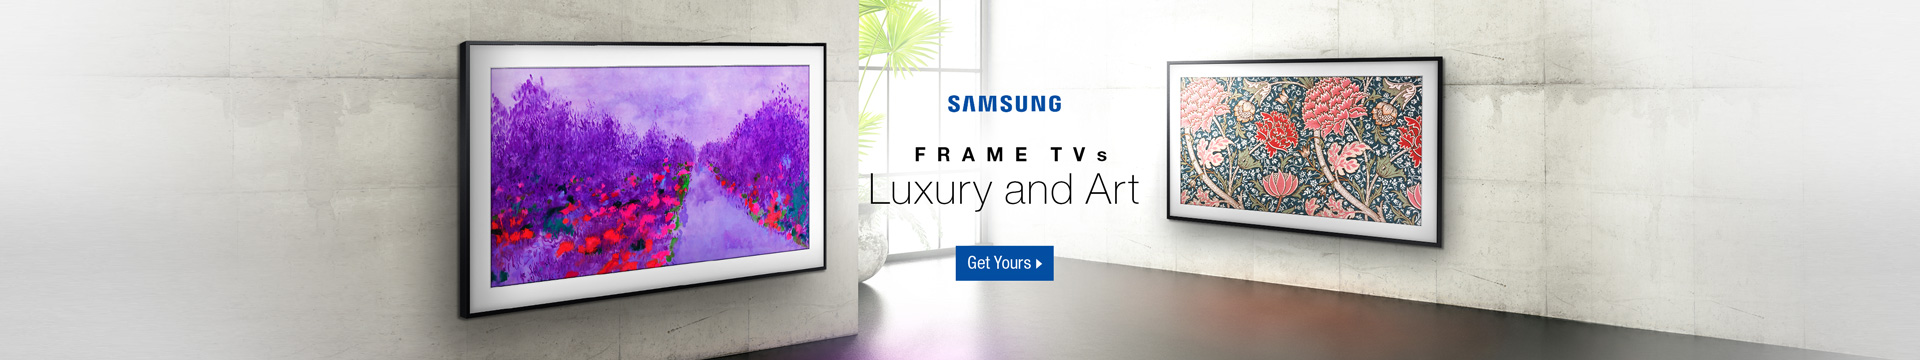 Frame Tvs Luxury and Art